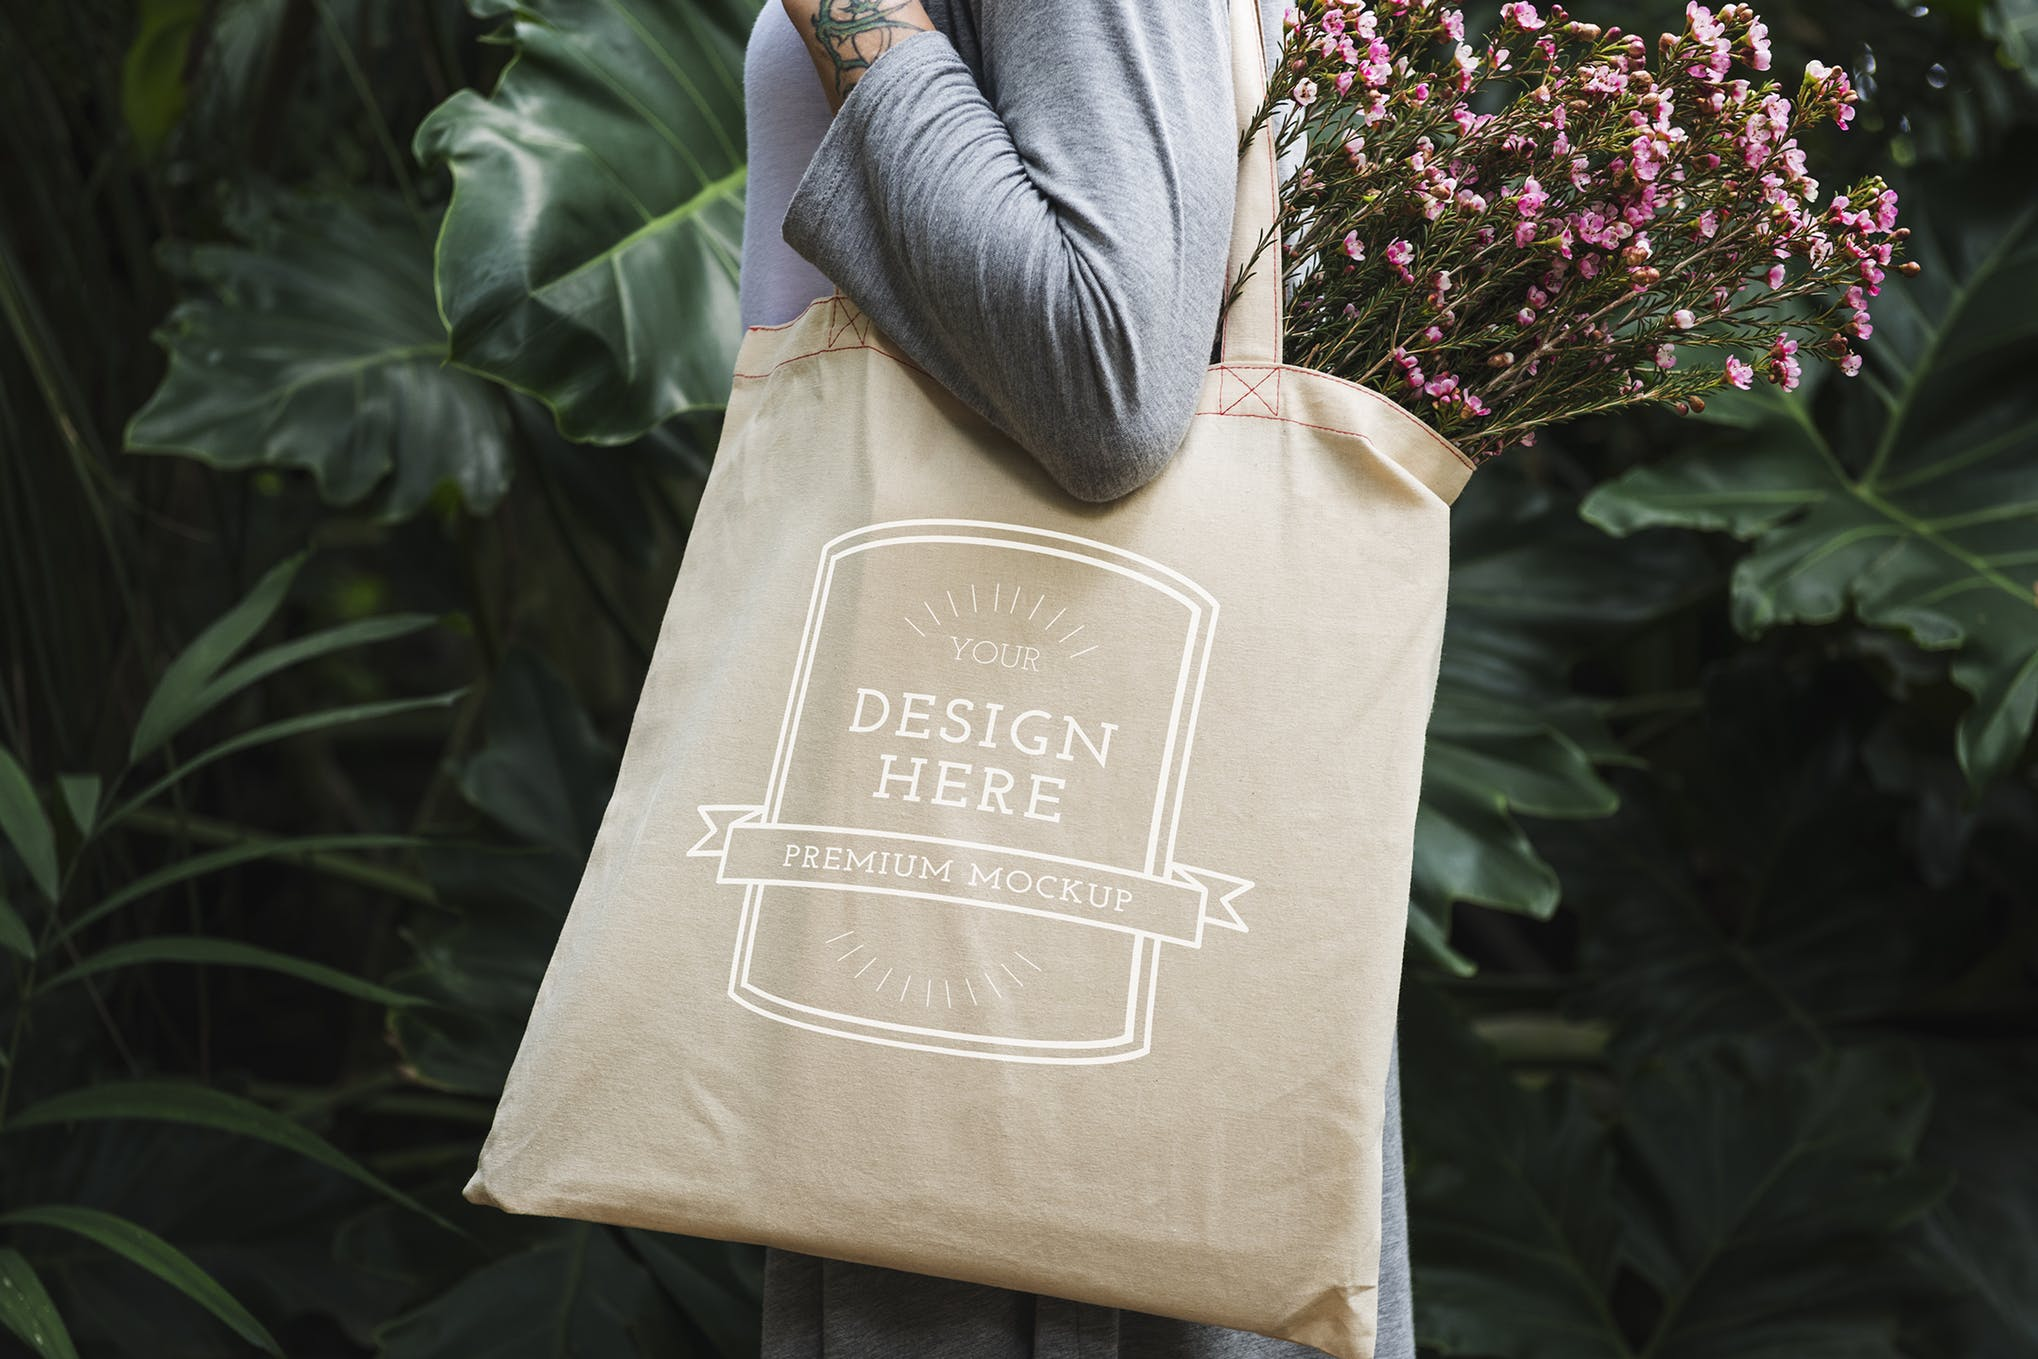 Stylish tote bags for wholesale